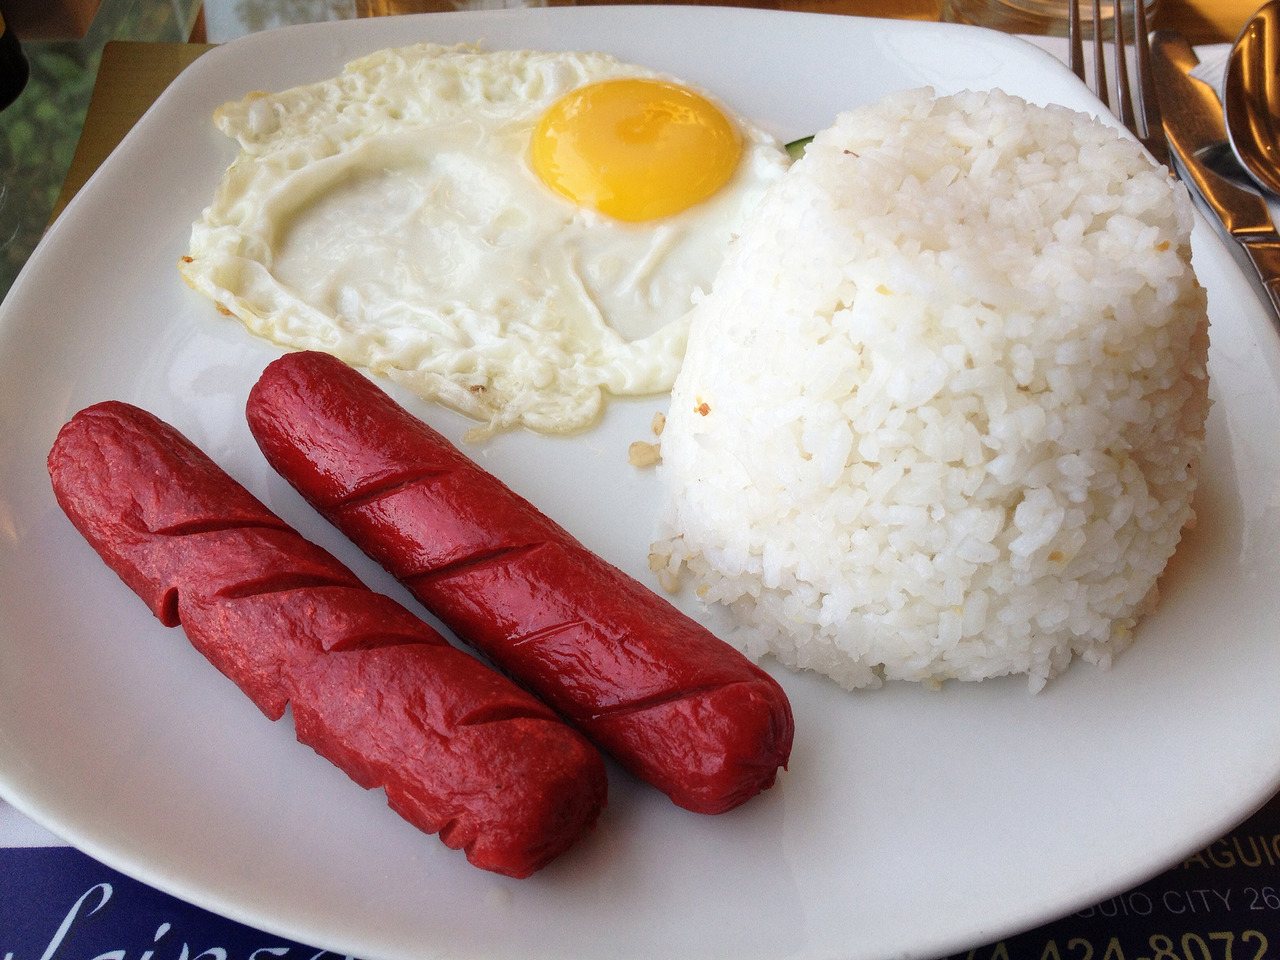 Philippines Hot Dog